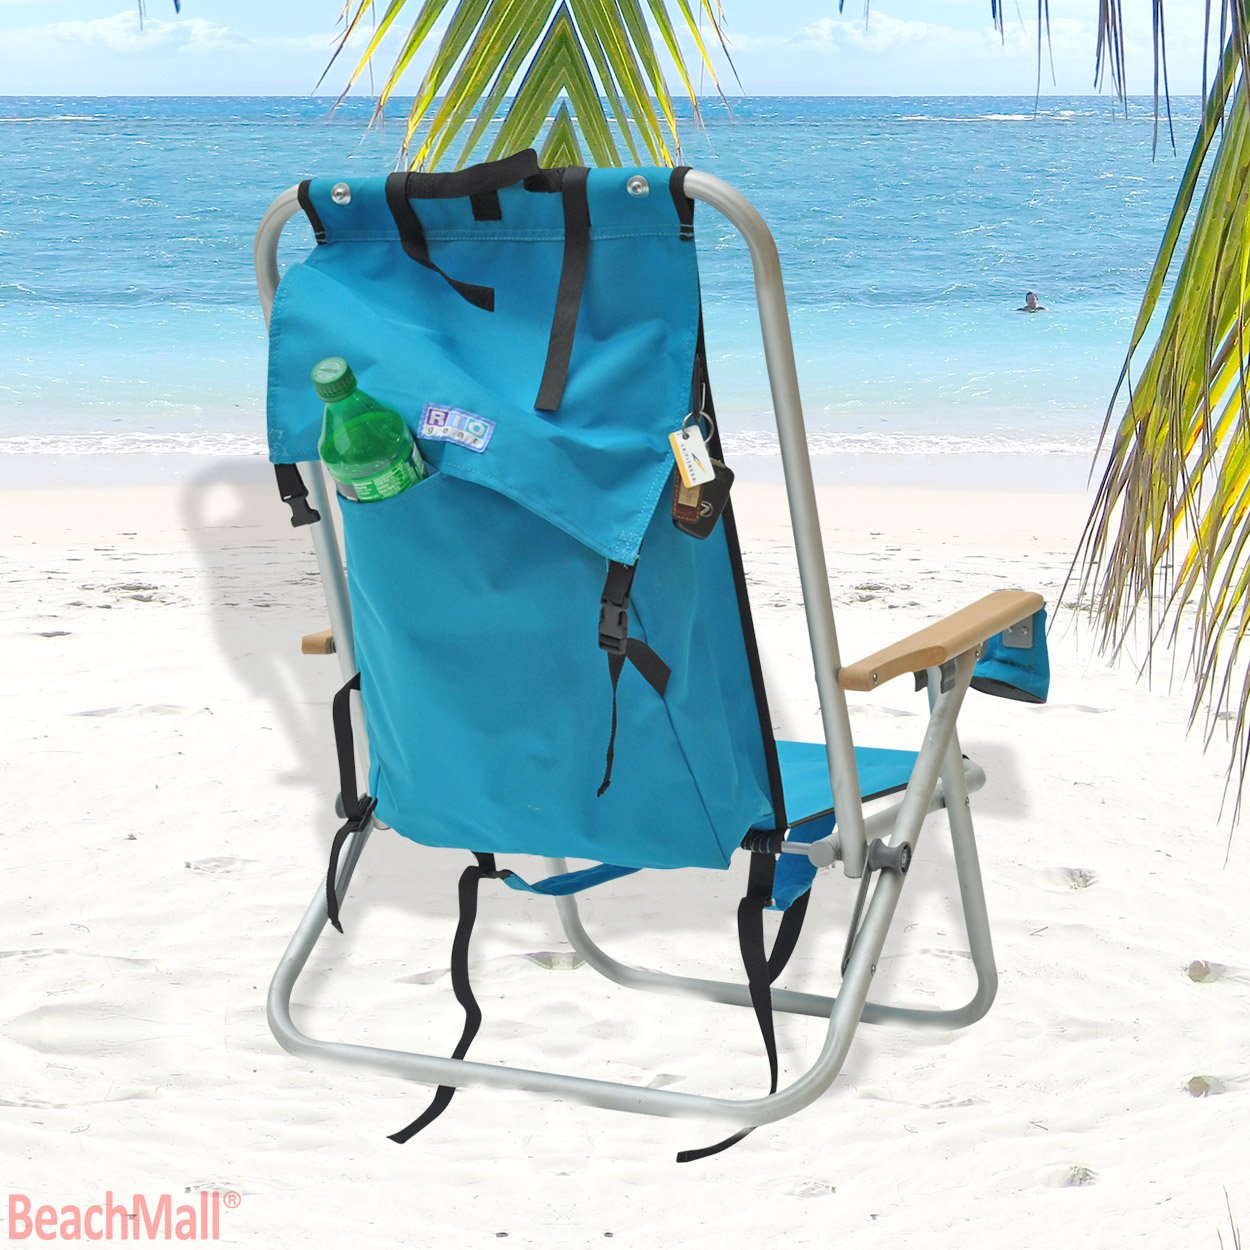 Amazon.com  Deluxe WearEver Rio Aluminum Backpack Chair with Large Storage Pouch  Sports u0026 Outdoors  sc 1 st  Amazon.com & Amazon.com : Deluxe WearEver Rio Aluminum Backpack Chair with Large ...